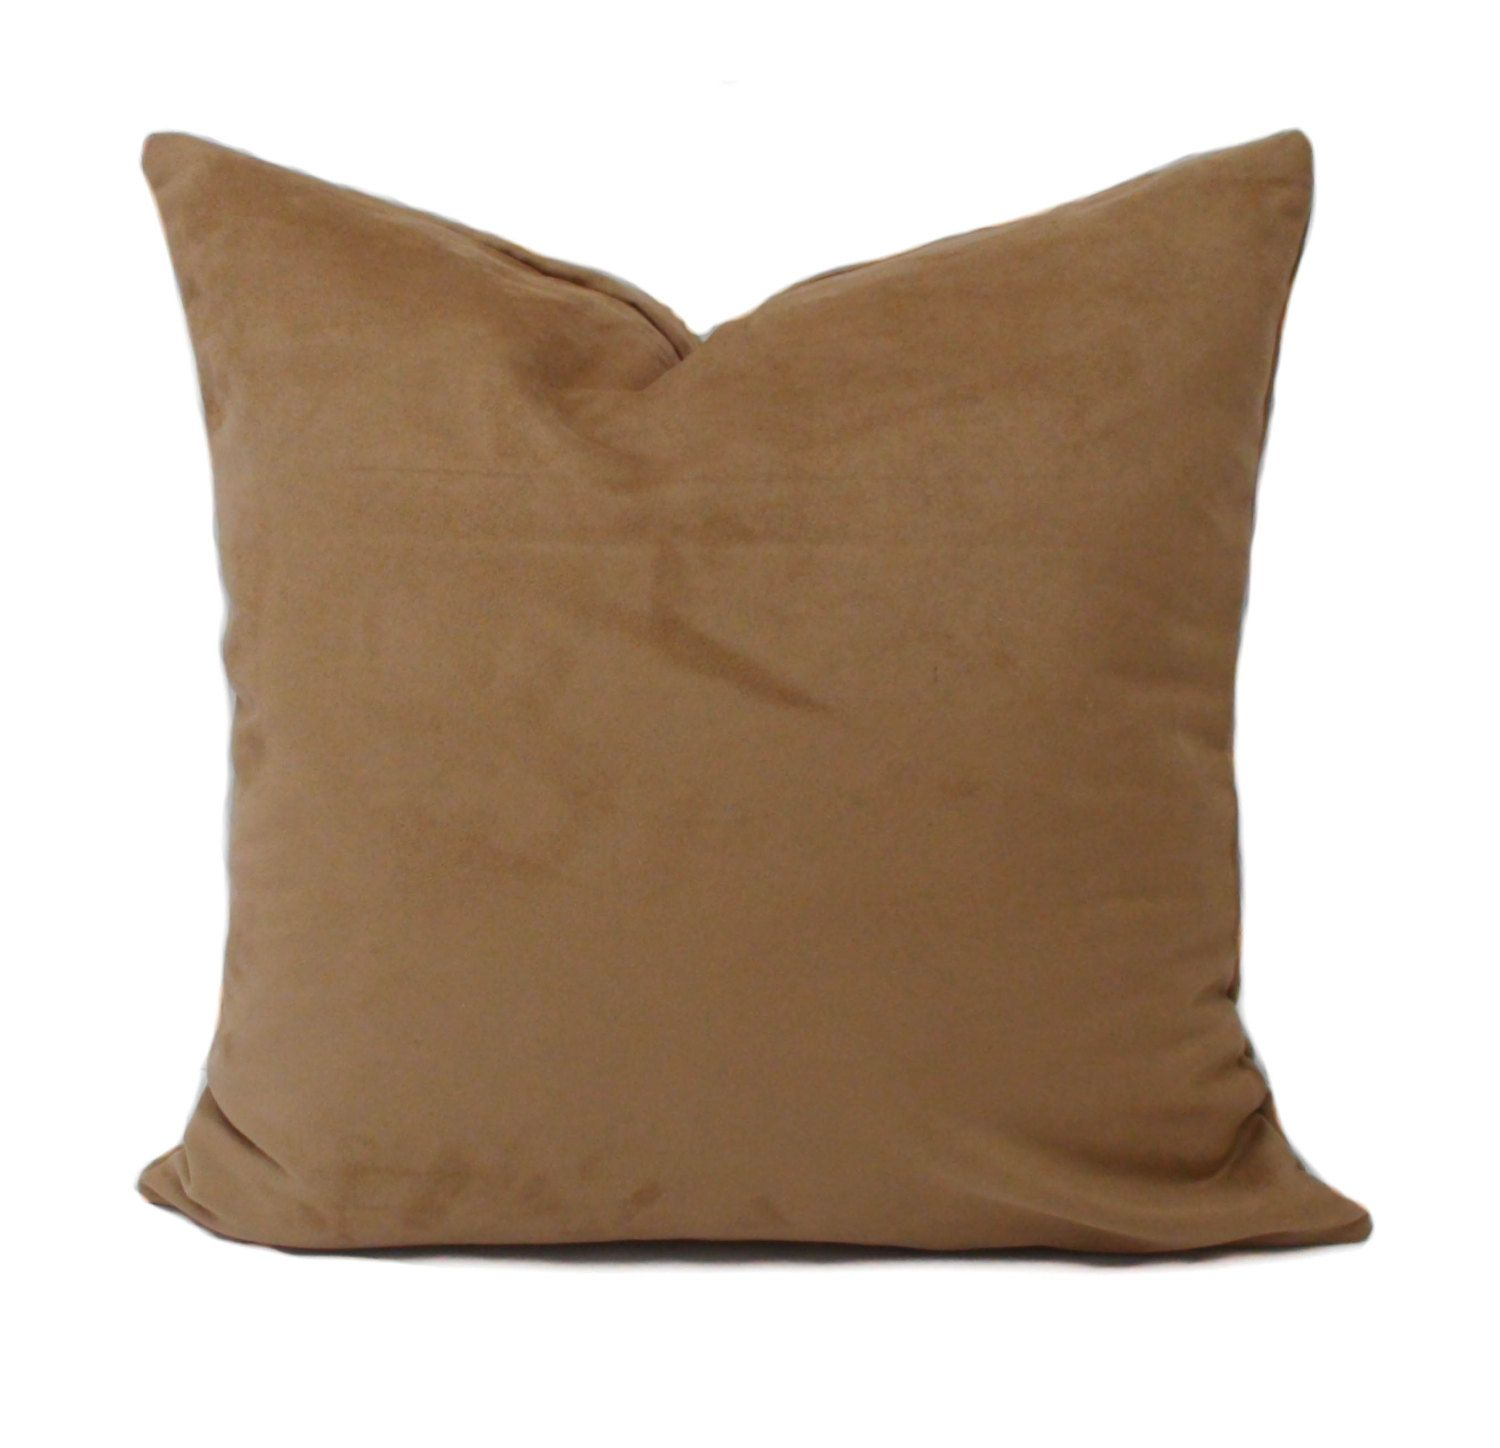 Brown Pillow Covers 20x20 Decorative Pillows Brown Throw Pillow Sofa Cushions Couch Cushion Brown T Brown Pillow Covers Brown Throw Pillows Brown Pillows